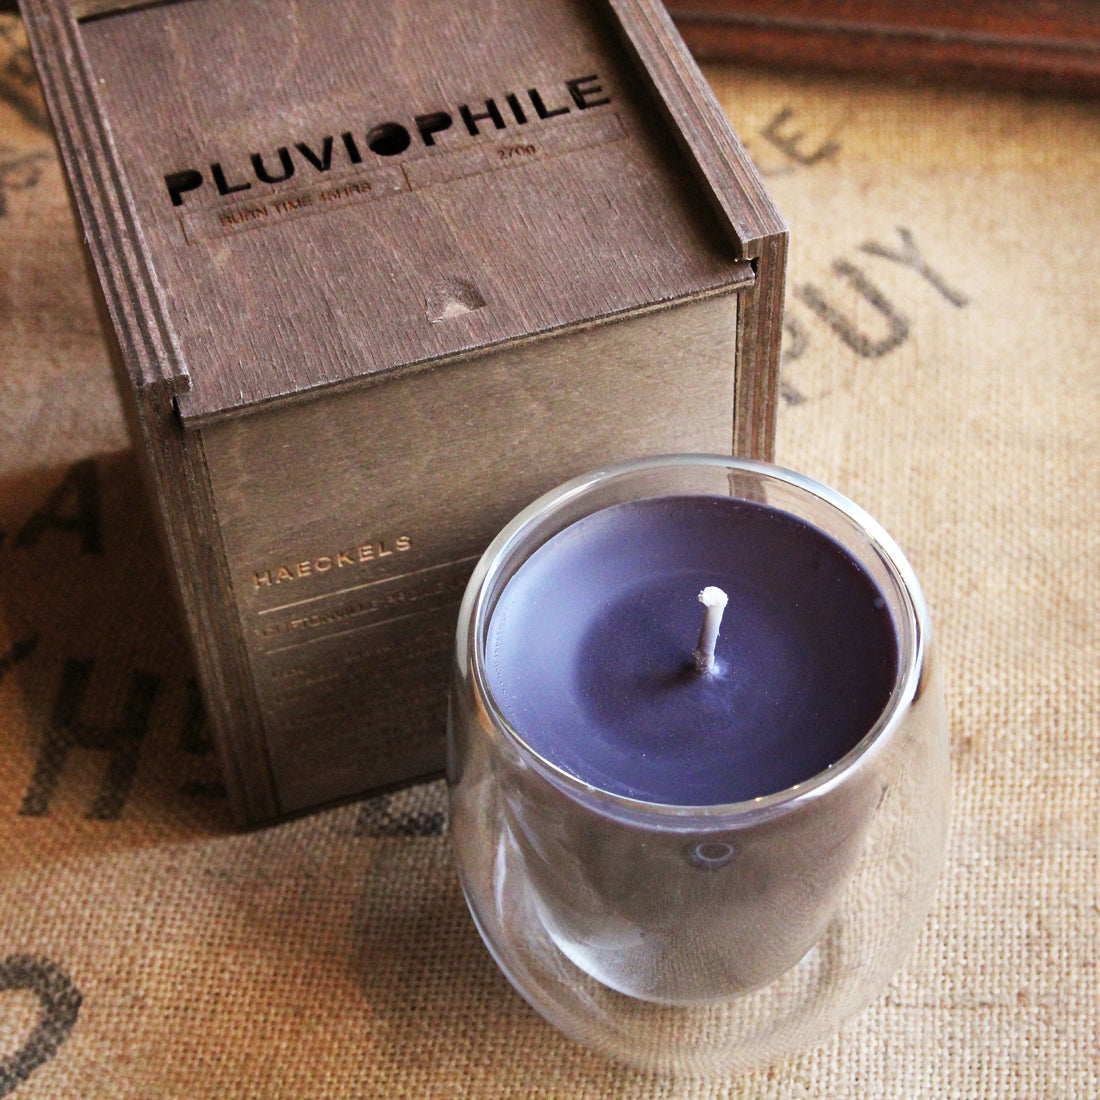 Haeckels - Pluviophile Rain Candle